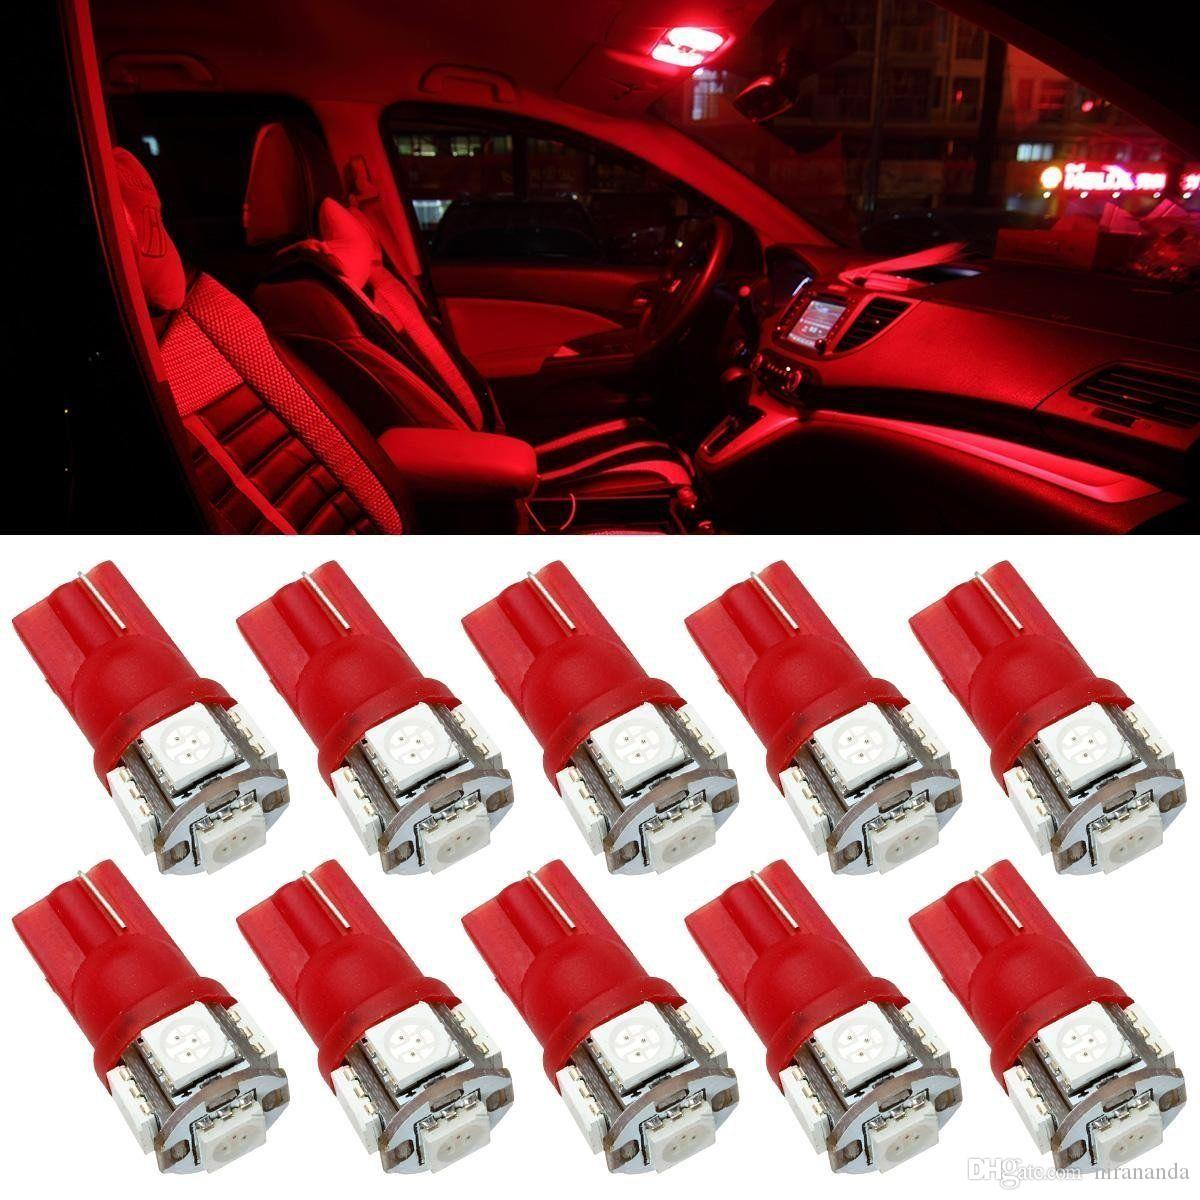 Red Led Bulbs Car Trunk Interior Dome Map Lights 5 5050 Smd 12v T10 Wedge 194 168 W5w 158 2886x